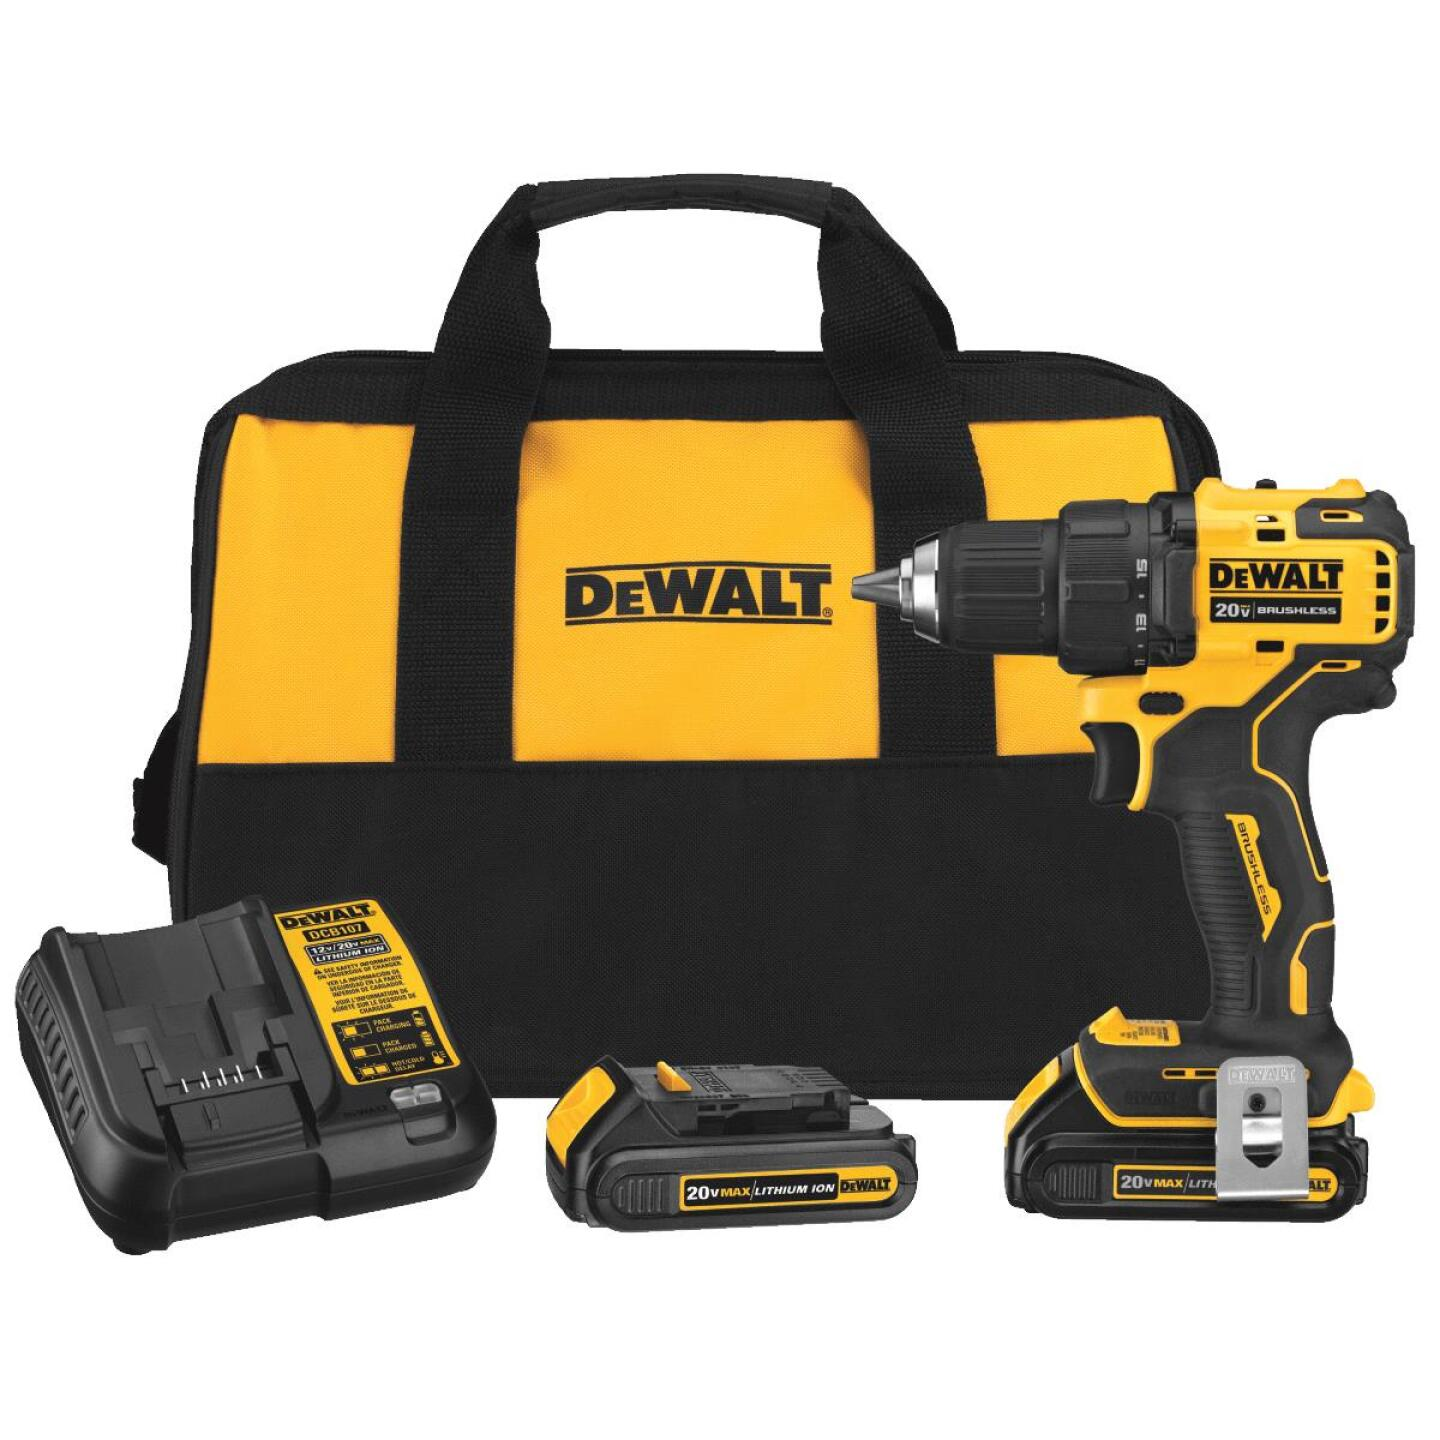 DeWalt Atomic 20 Volt MAX Lithium-Ion 1/2 In. Brushless Cordless Drill/Driver Kit Image 1